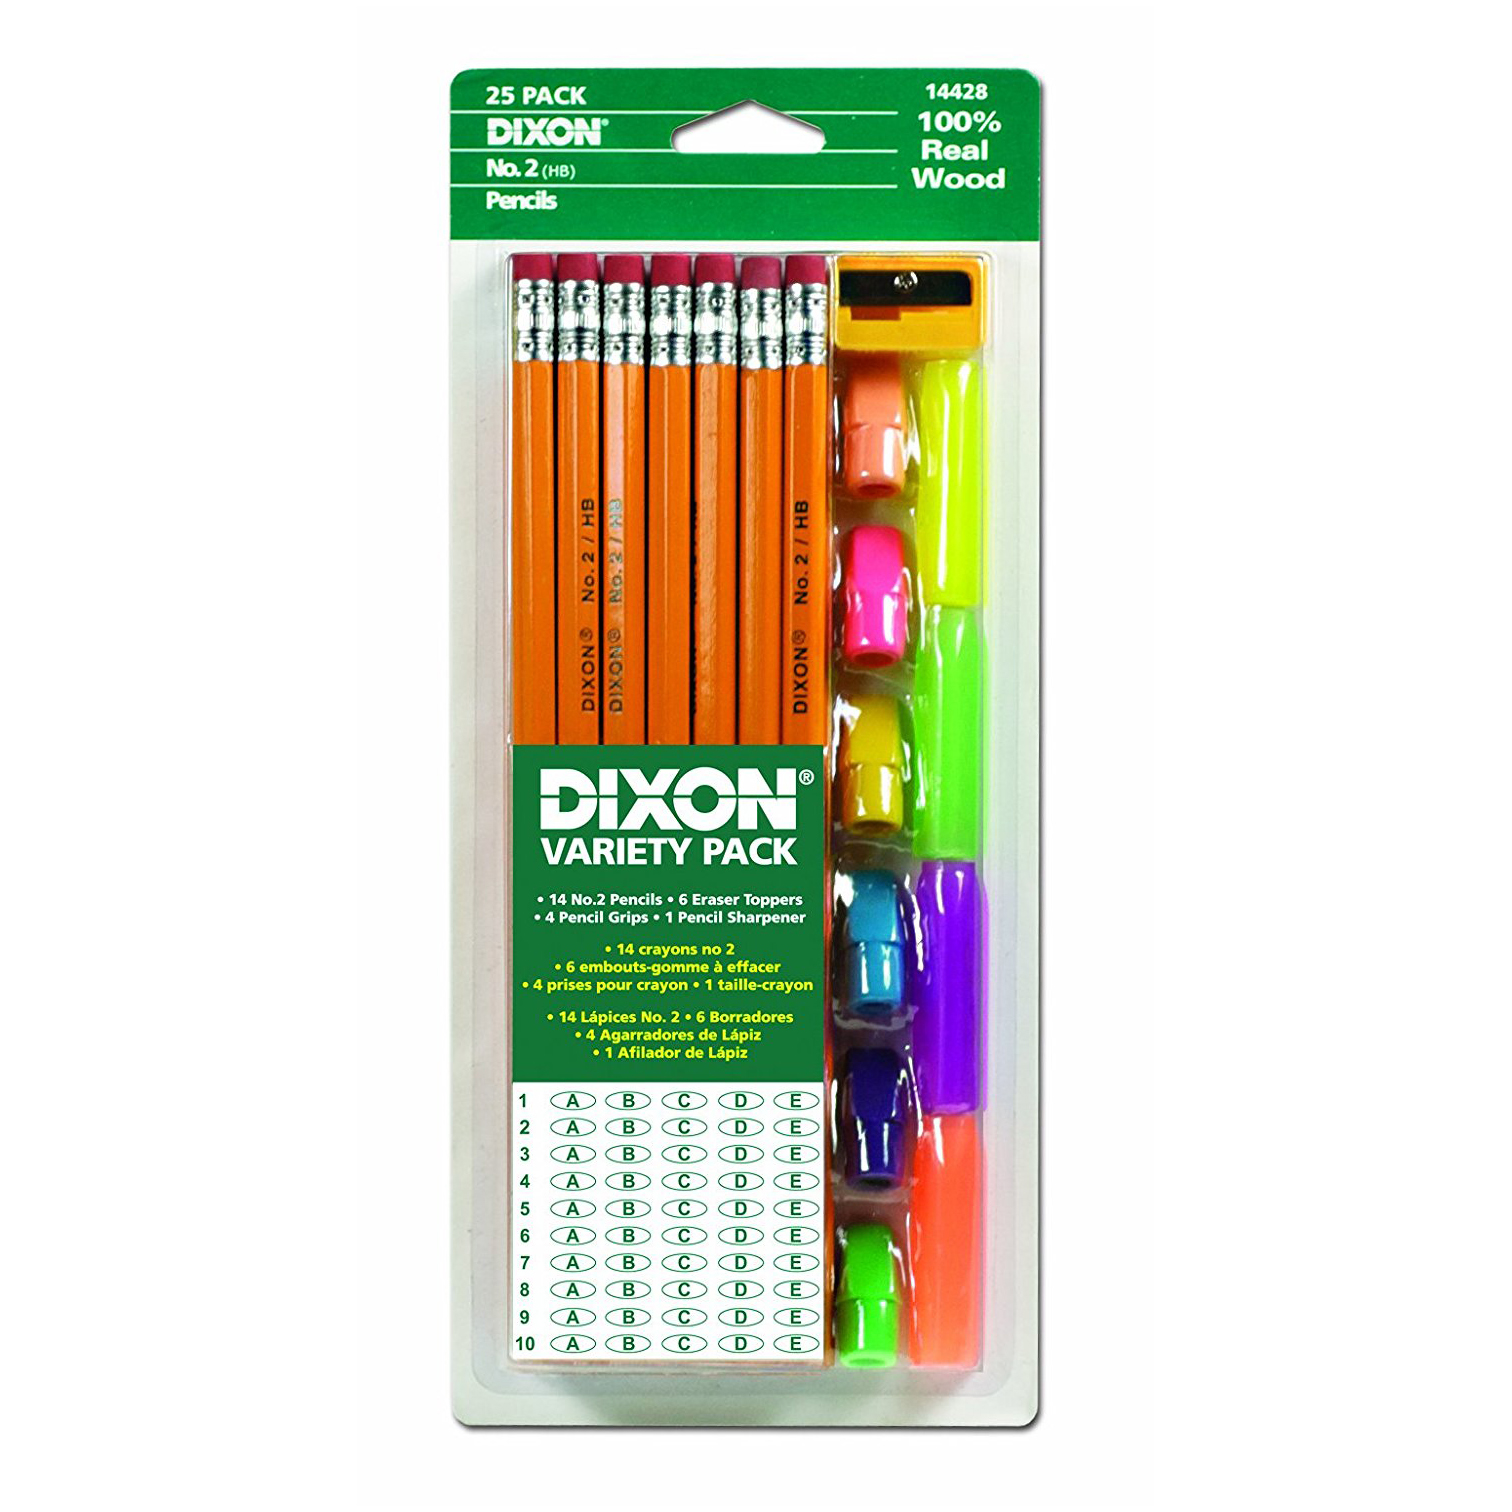 dixon scantron pencils testing pack 2 pencils erasers grips and